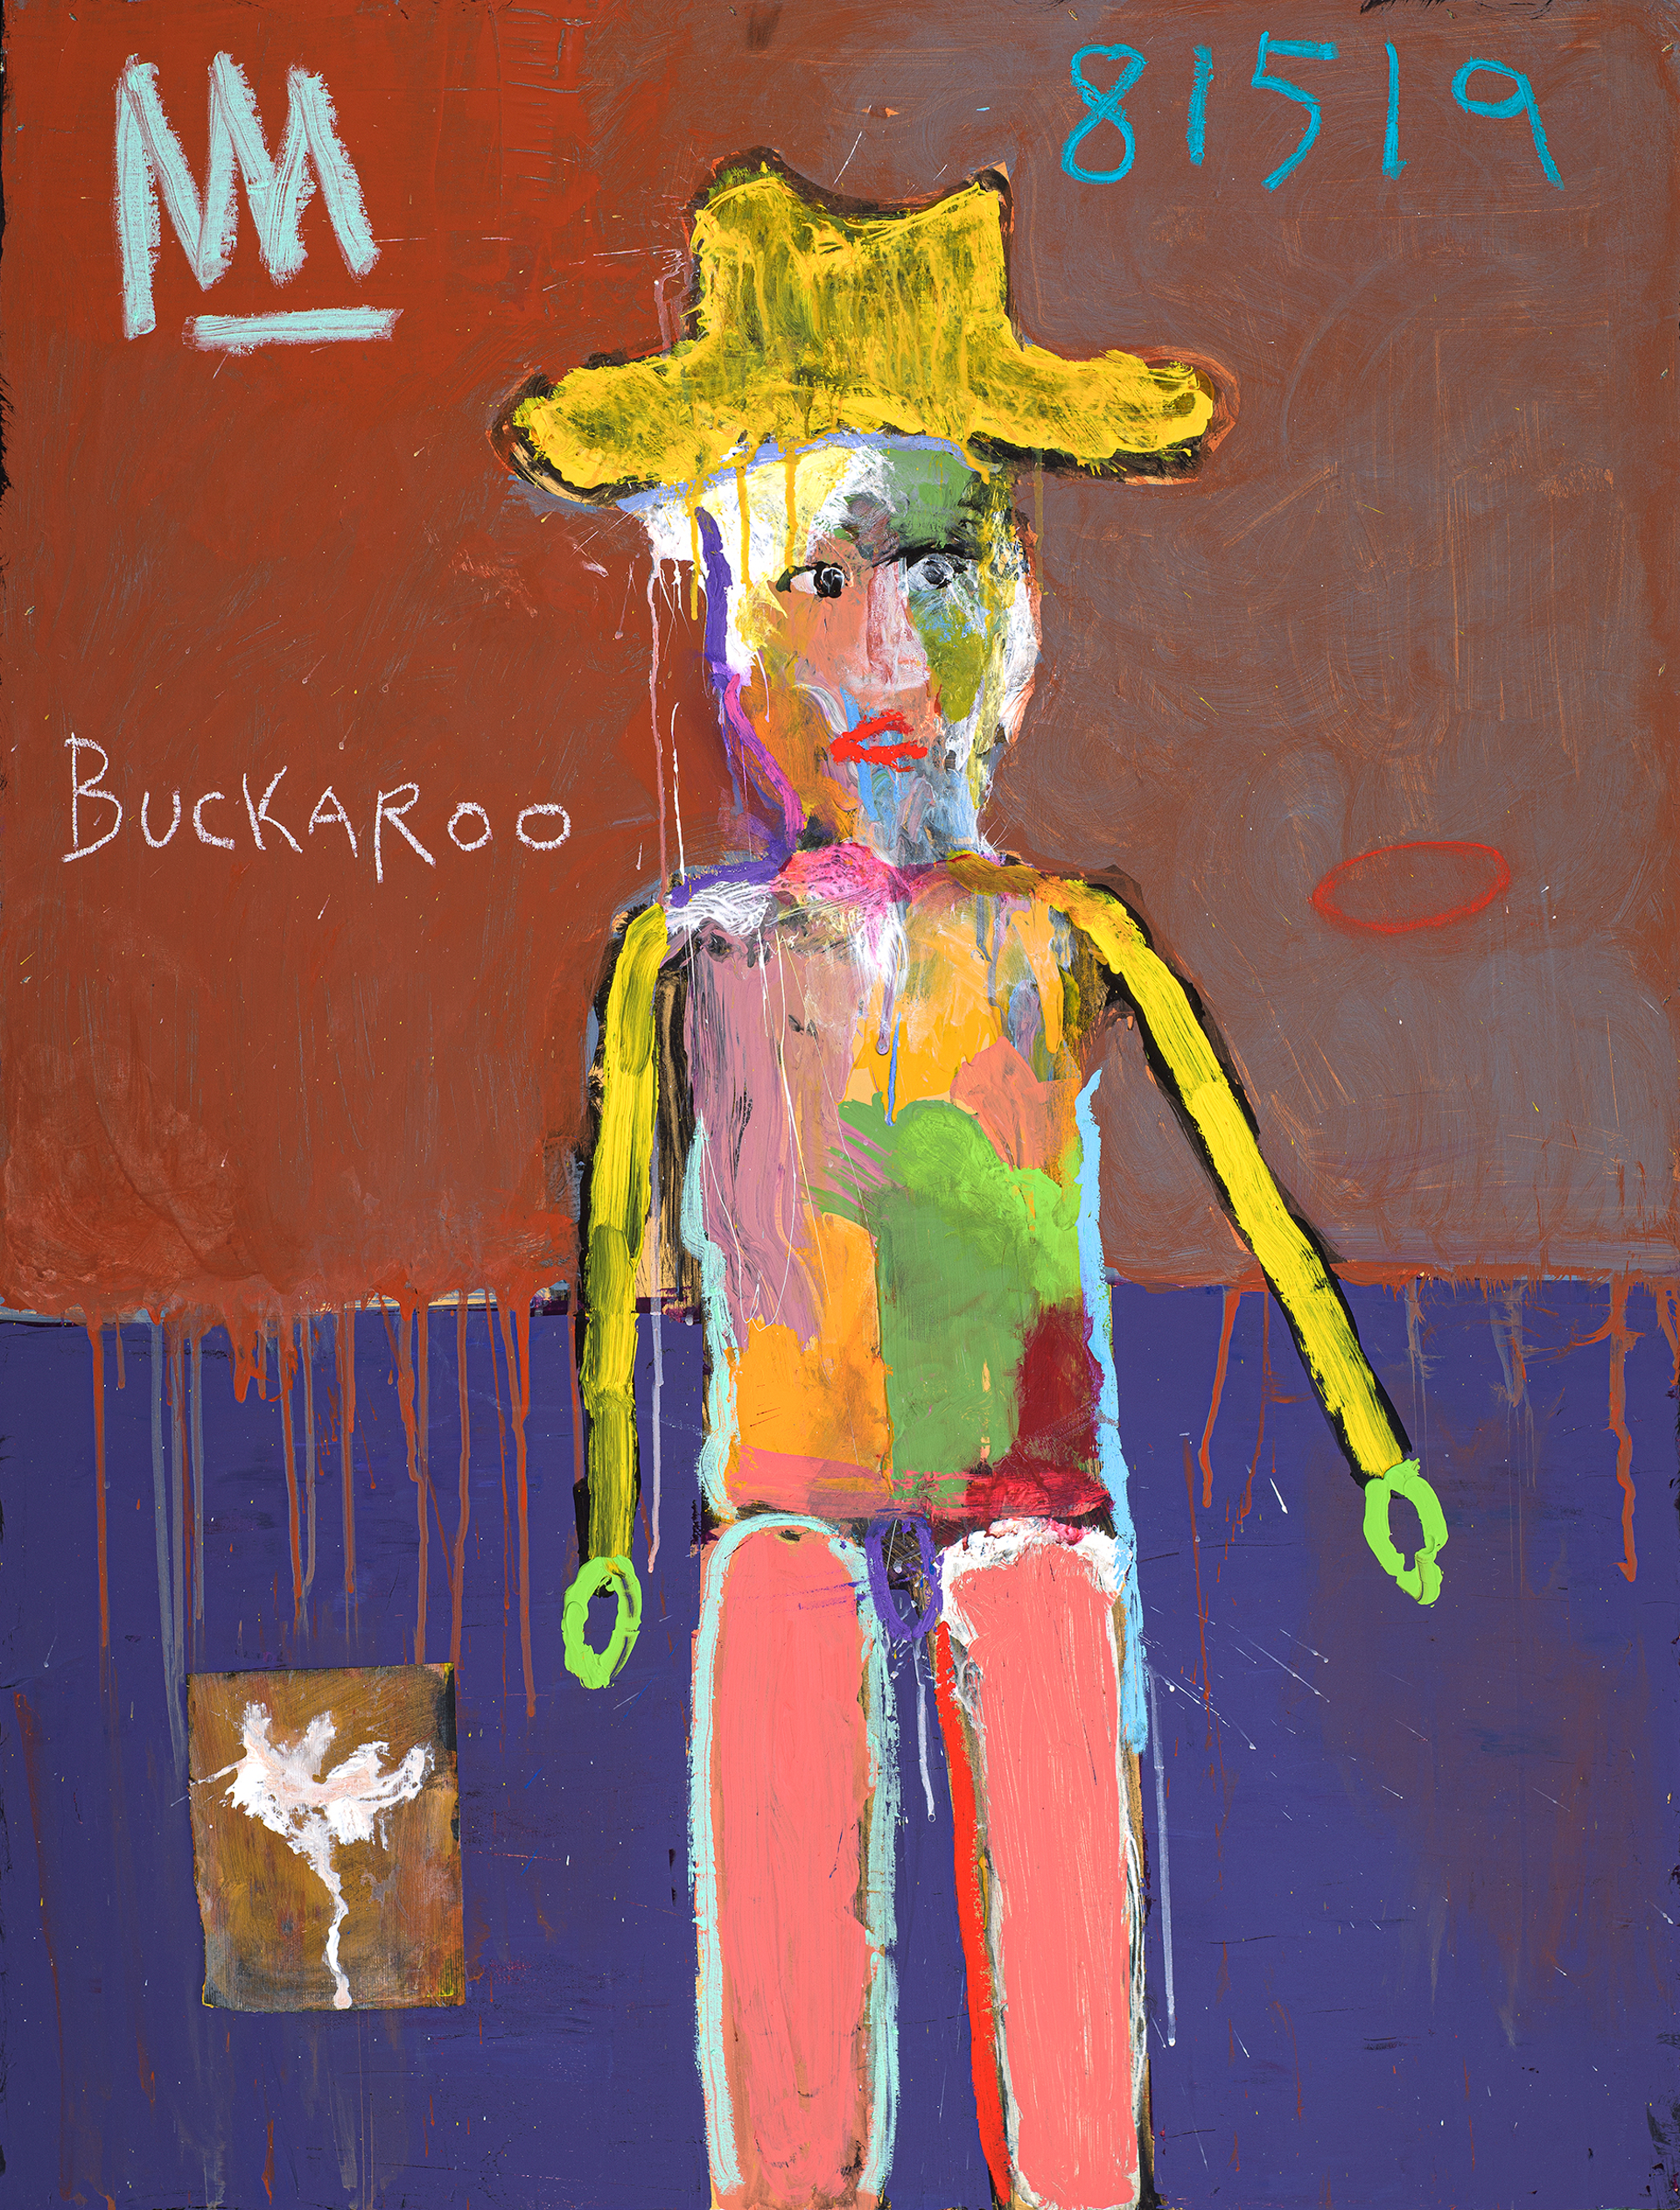 Buckaroo with Pink Chaps by Michael Snodgrass